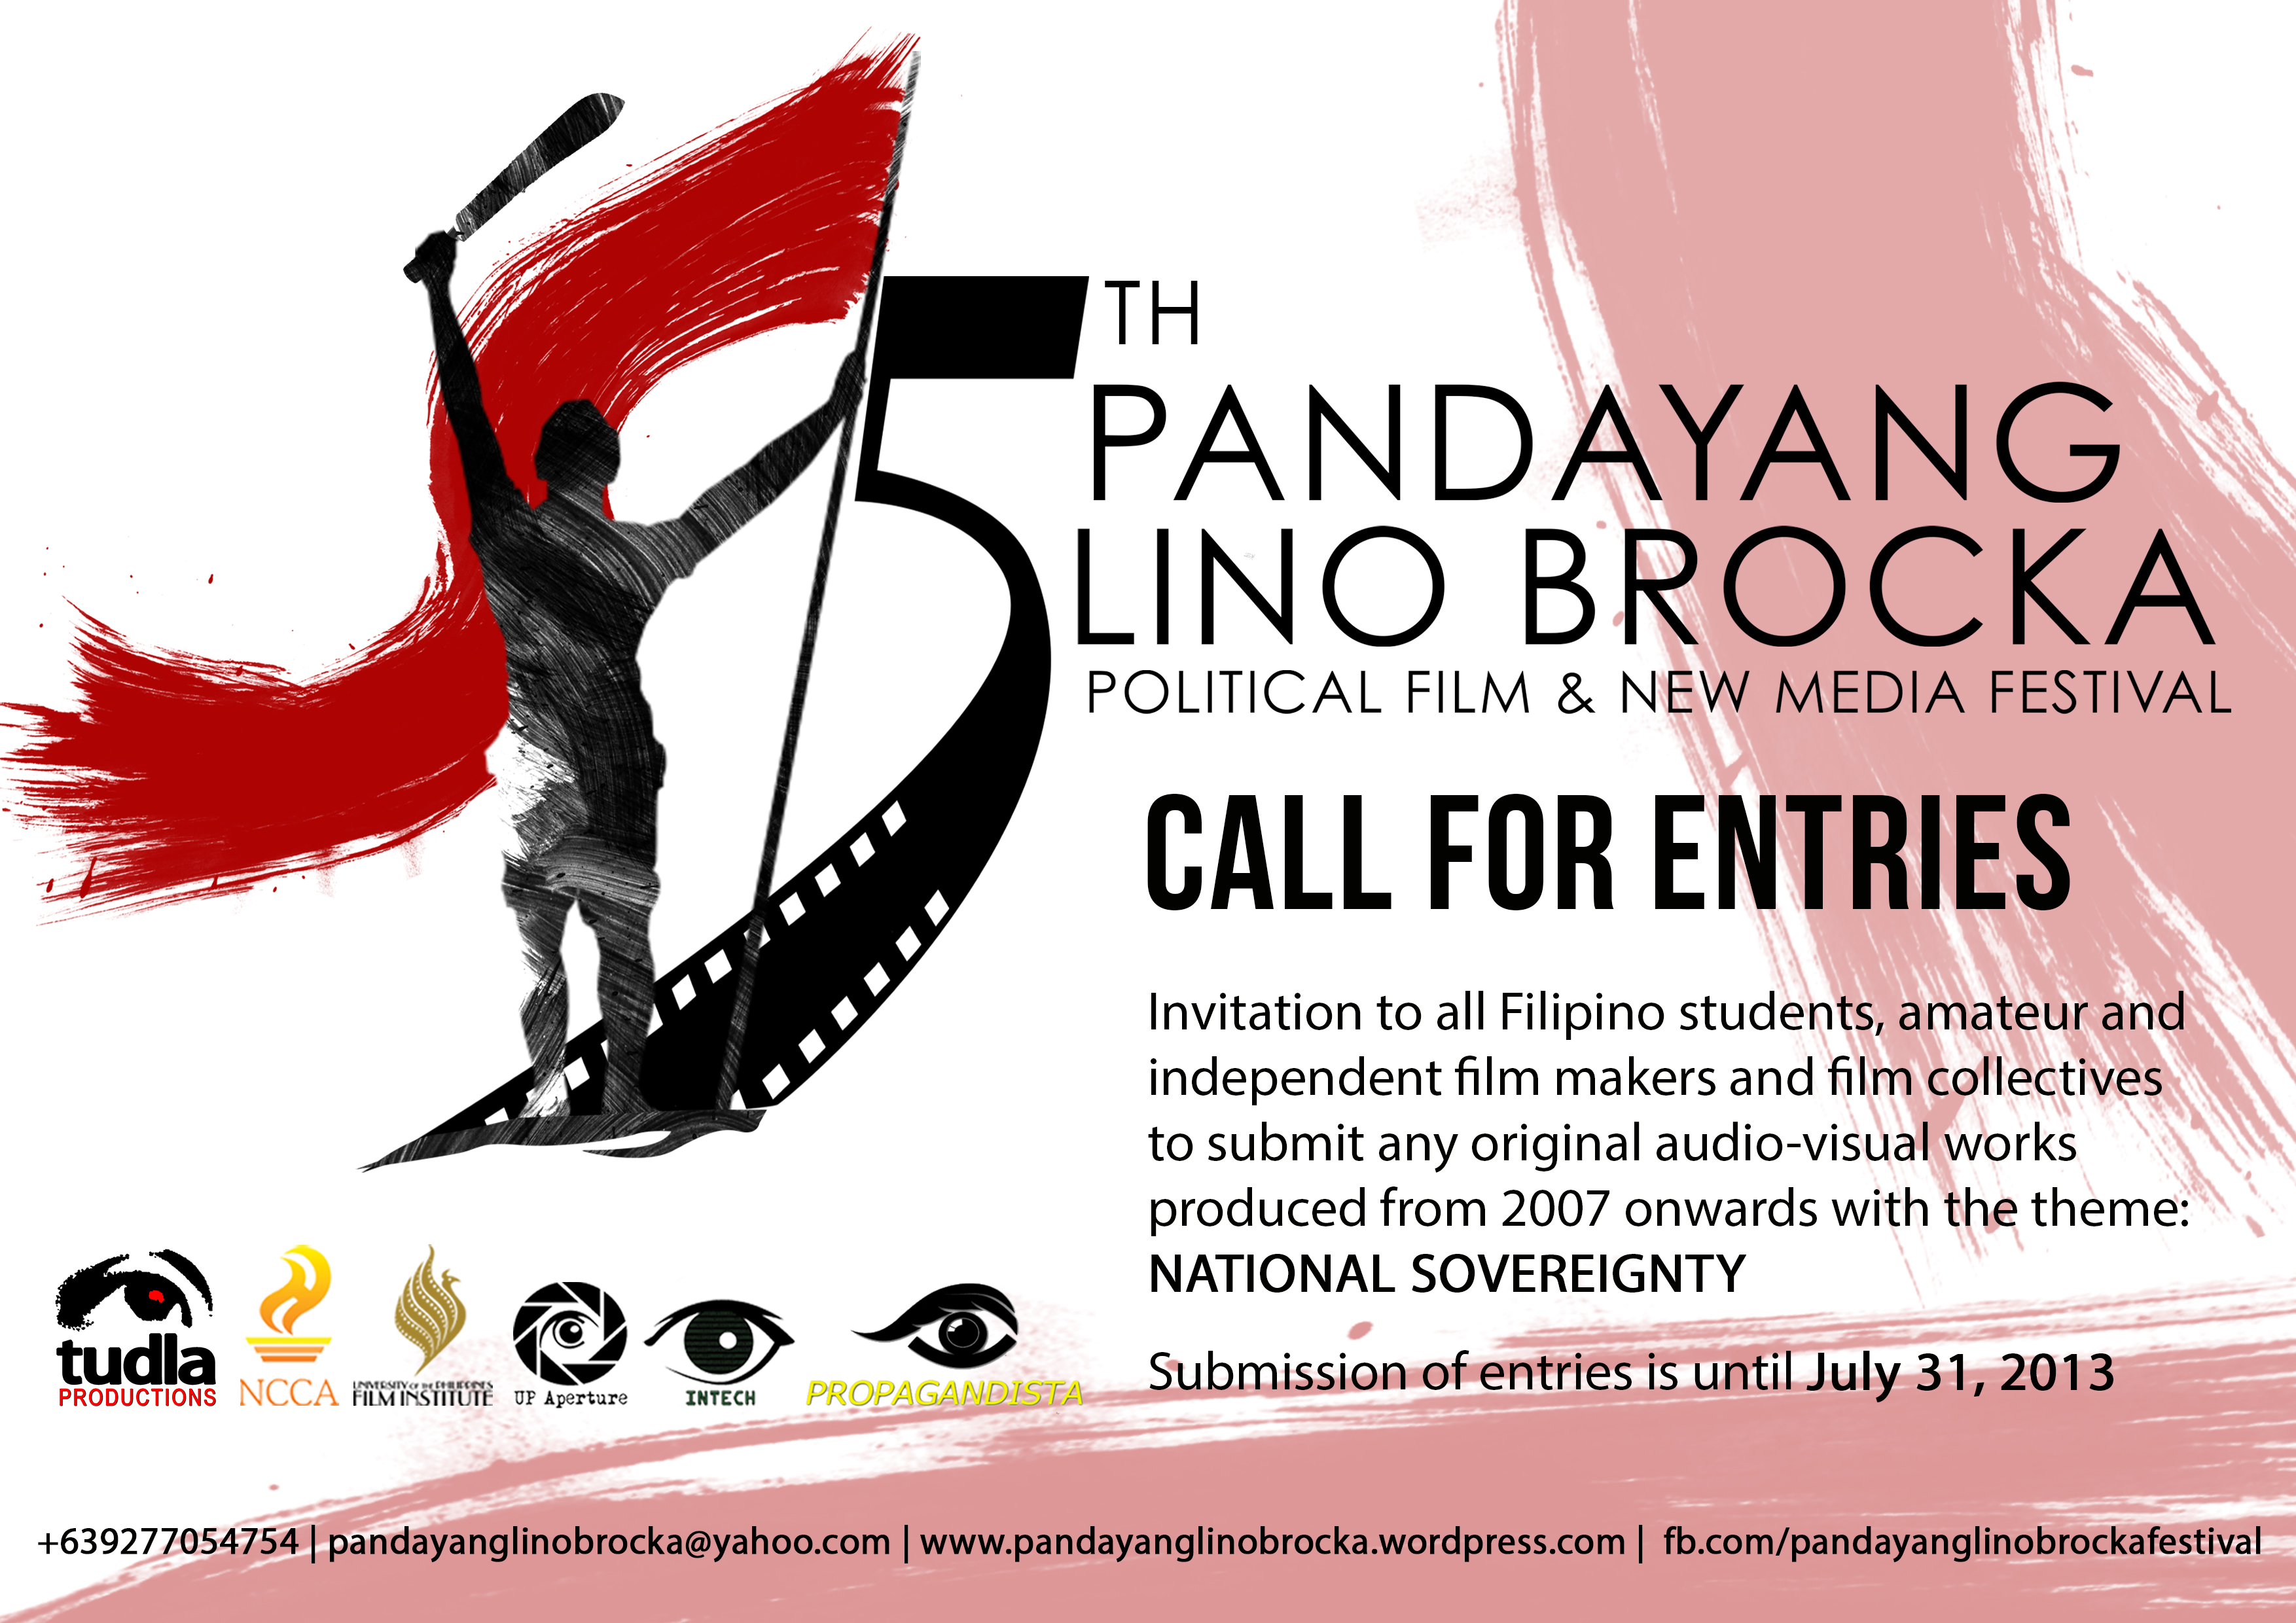 Call for entries 5th pandayang lino brocka political film and new 5th plb postercall for entriesa4 stopboris Choice Image